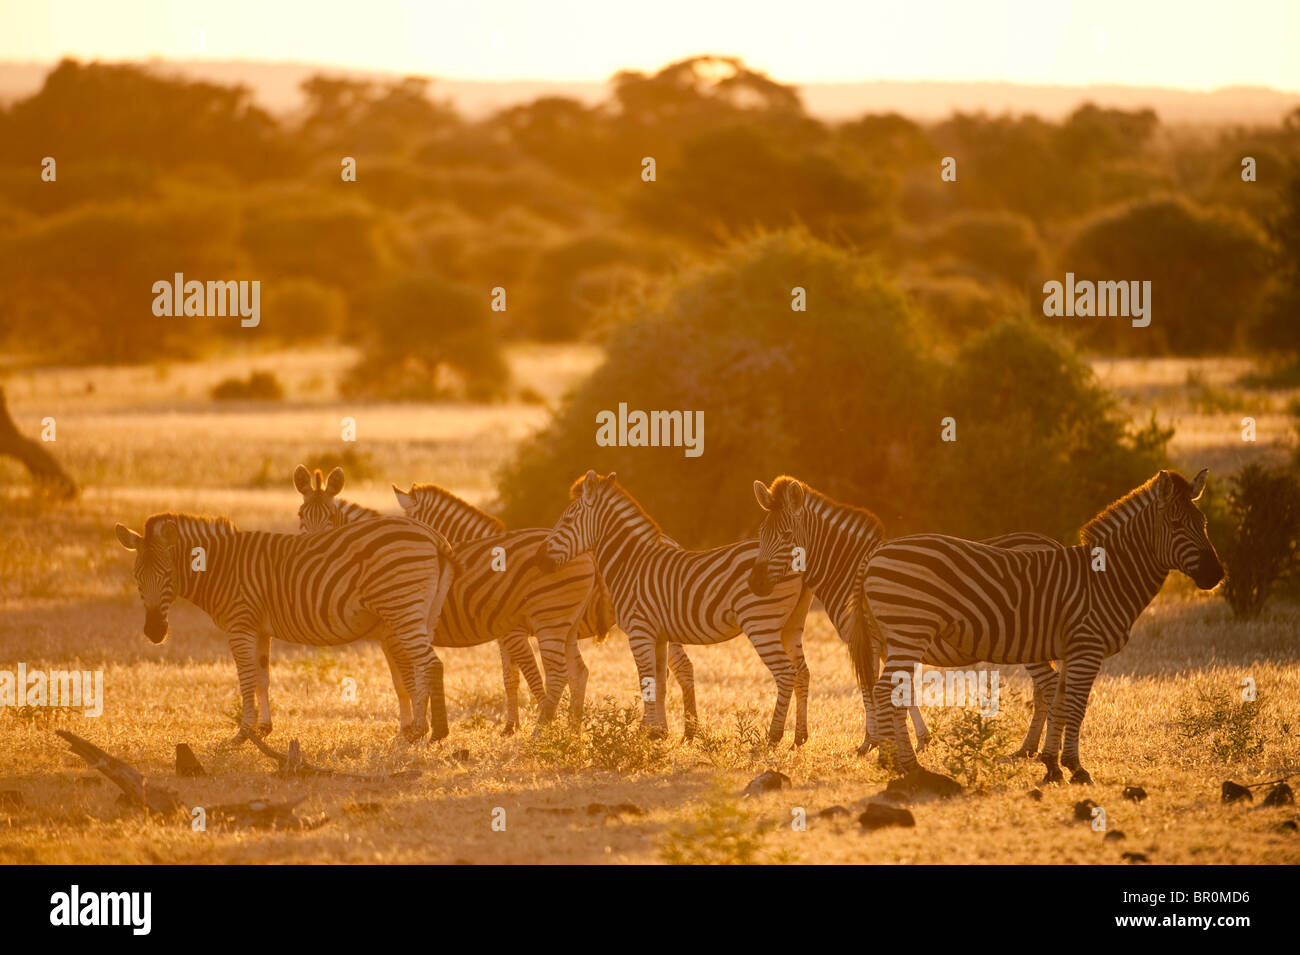 Burchell's zebra at sunset (Equus burchellii), Mashatu Game Reserve, tuli block, Botswana - Stock Image